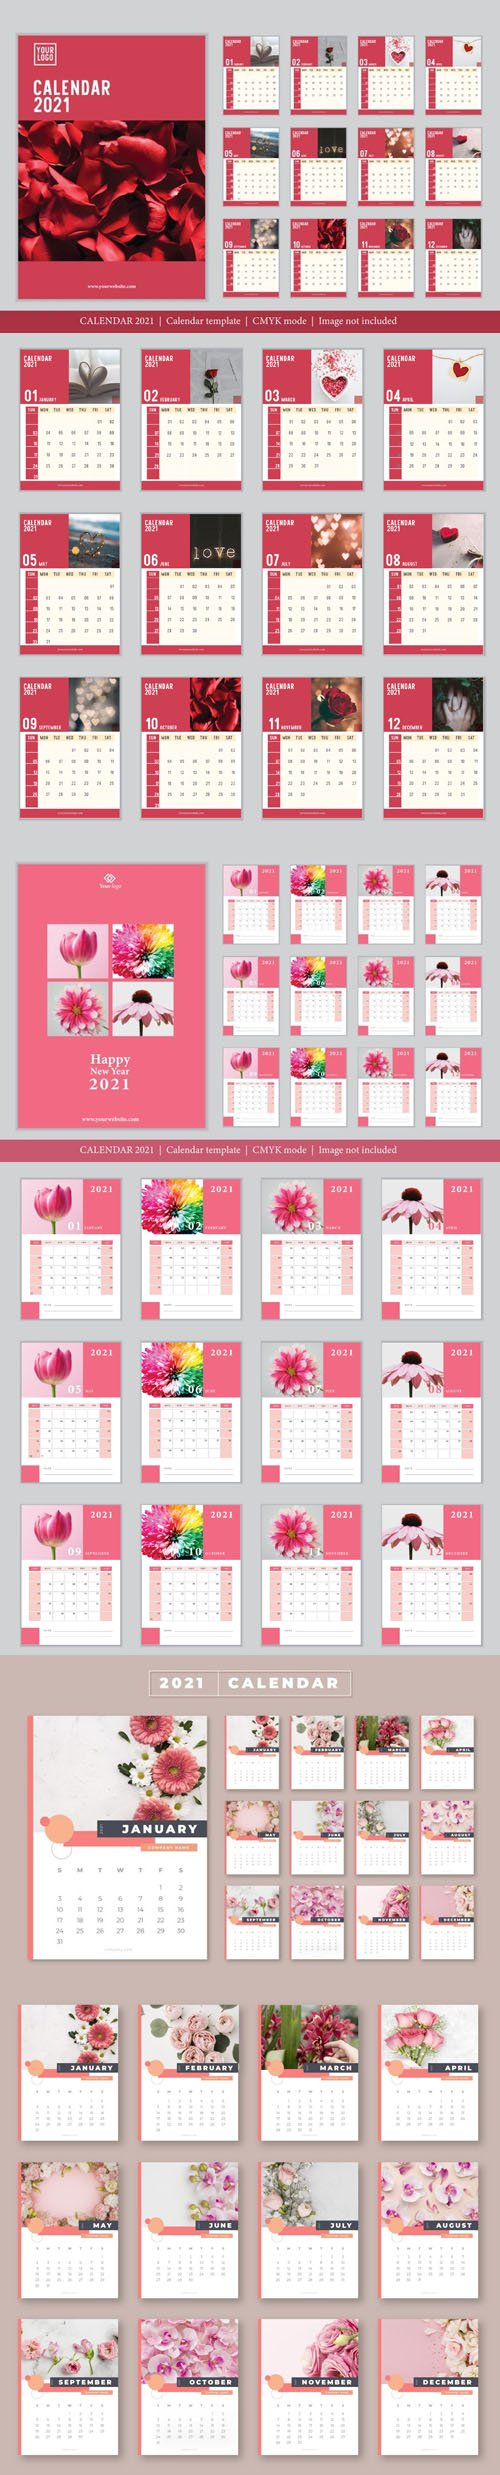 3 Vector Calendars 2021 in Romantic & Rosy Styles